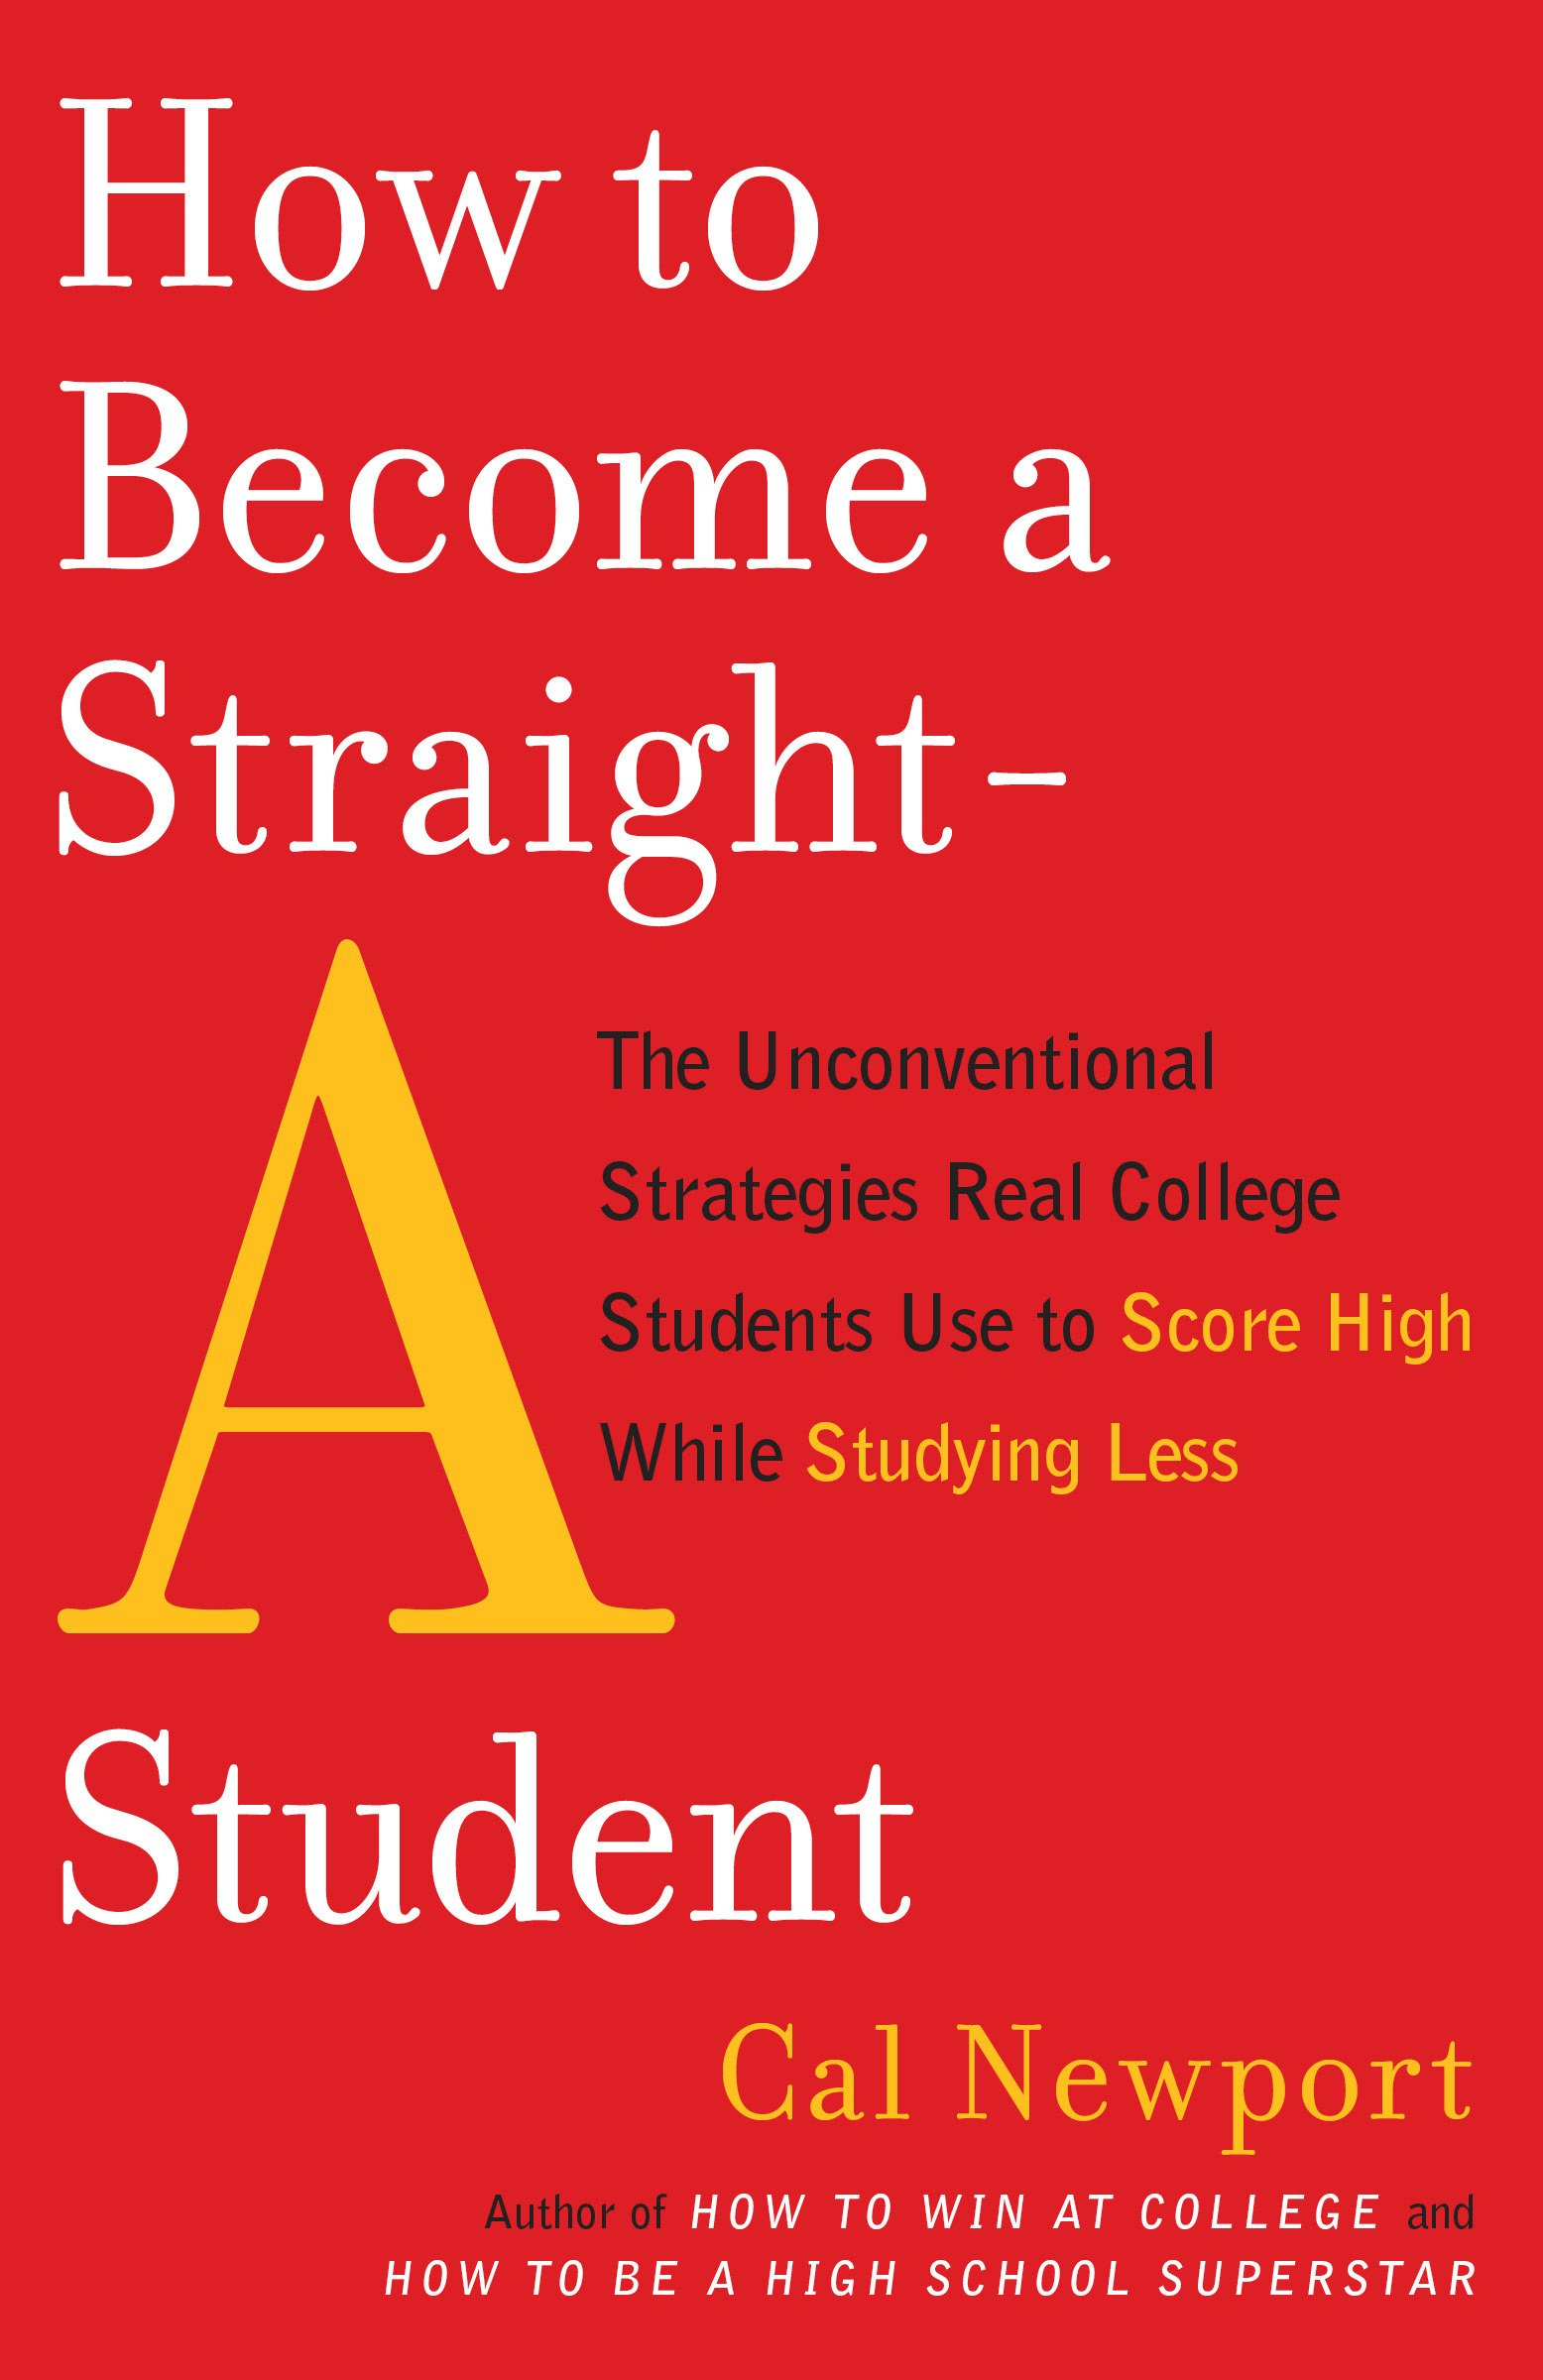 Amazon.com: How to Become a Straight-A Student: The Unconventional  Strategies Real College Students Use to Score High While Studying Less  (8601300480787): ...